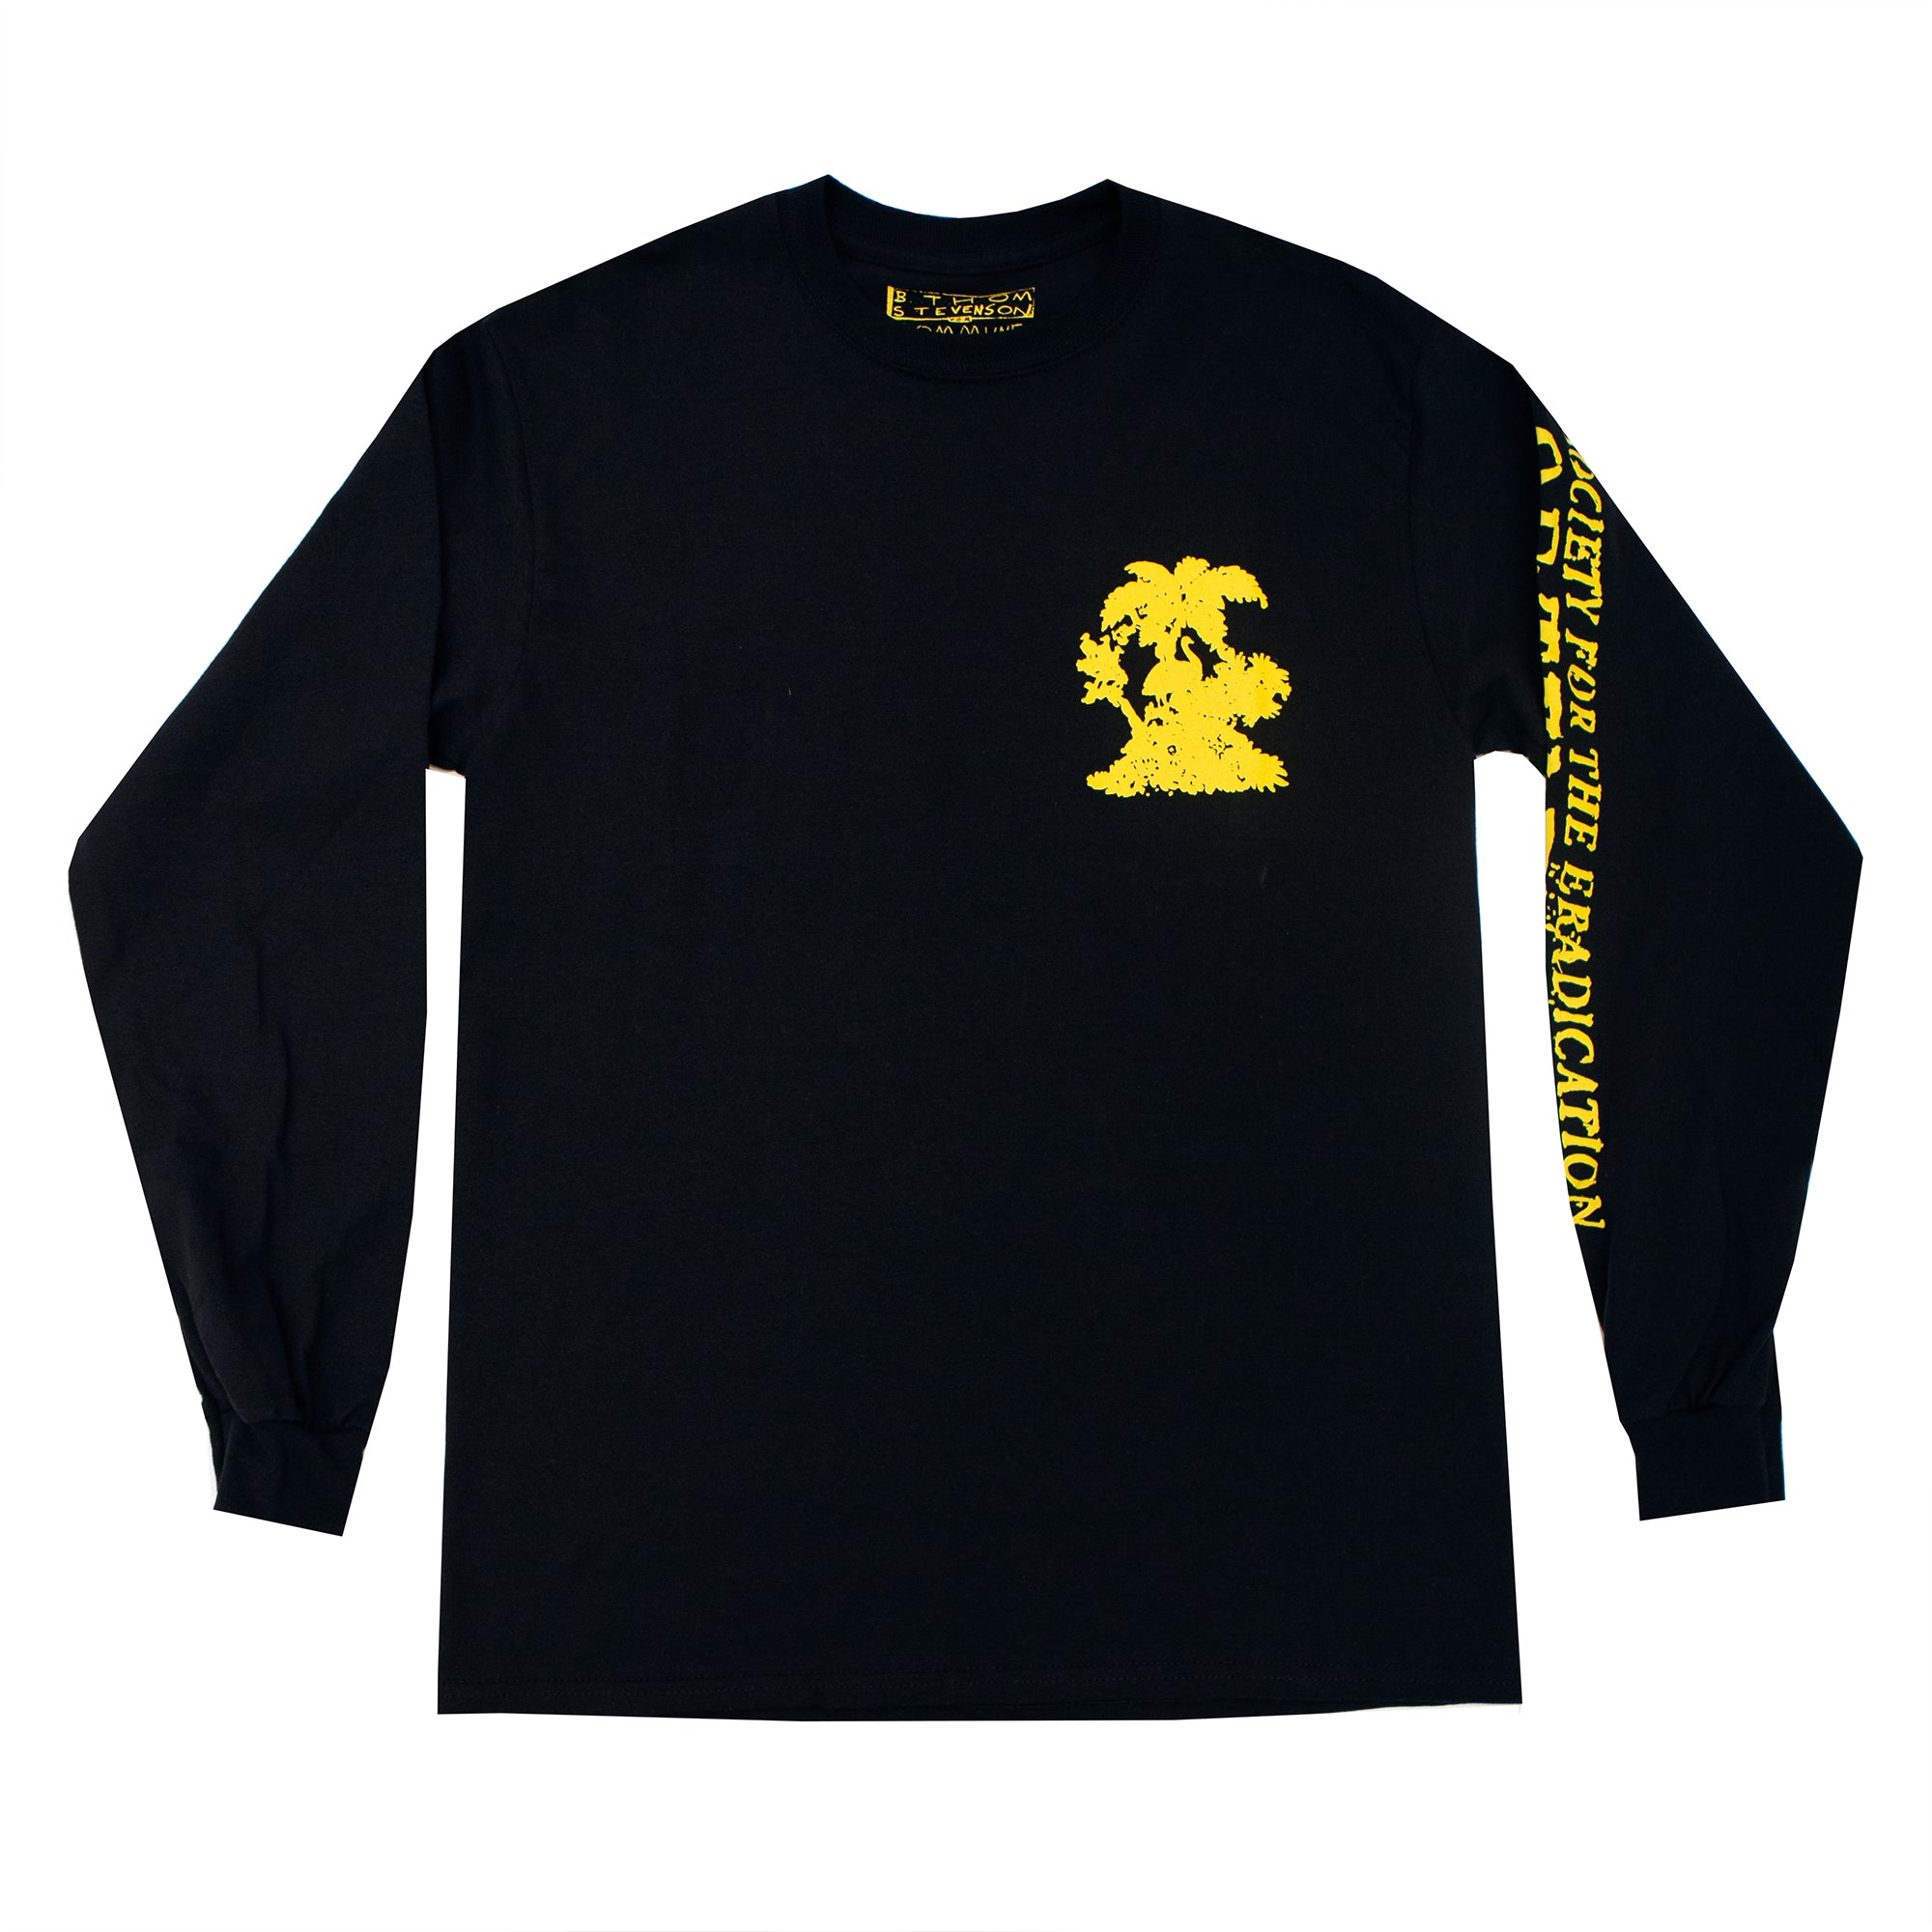 B. Thom Stevenson x Commune Long Sleeve